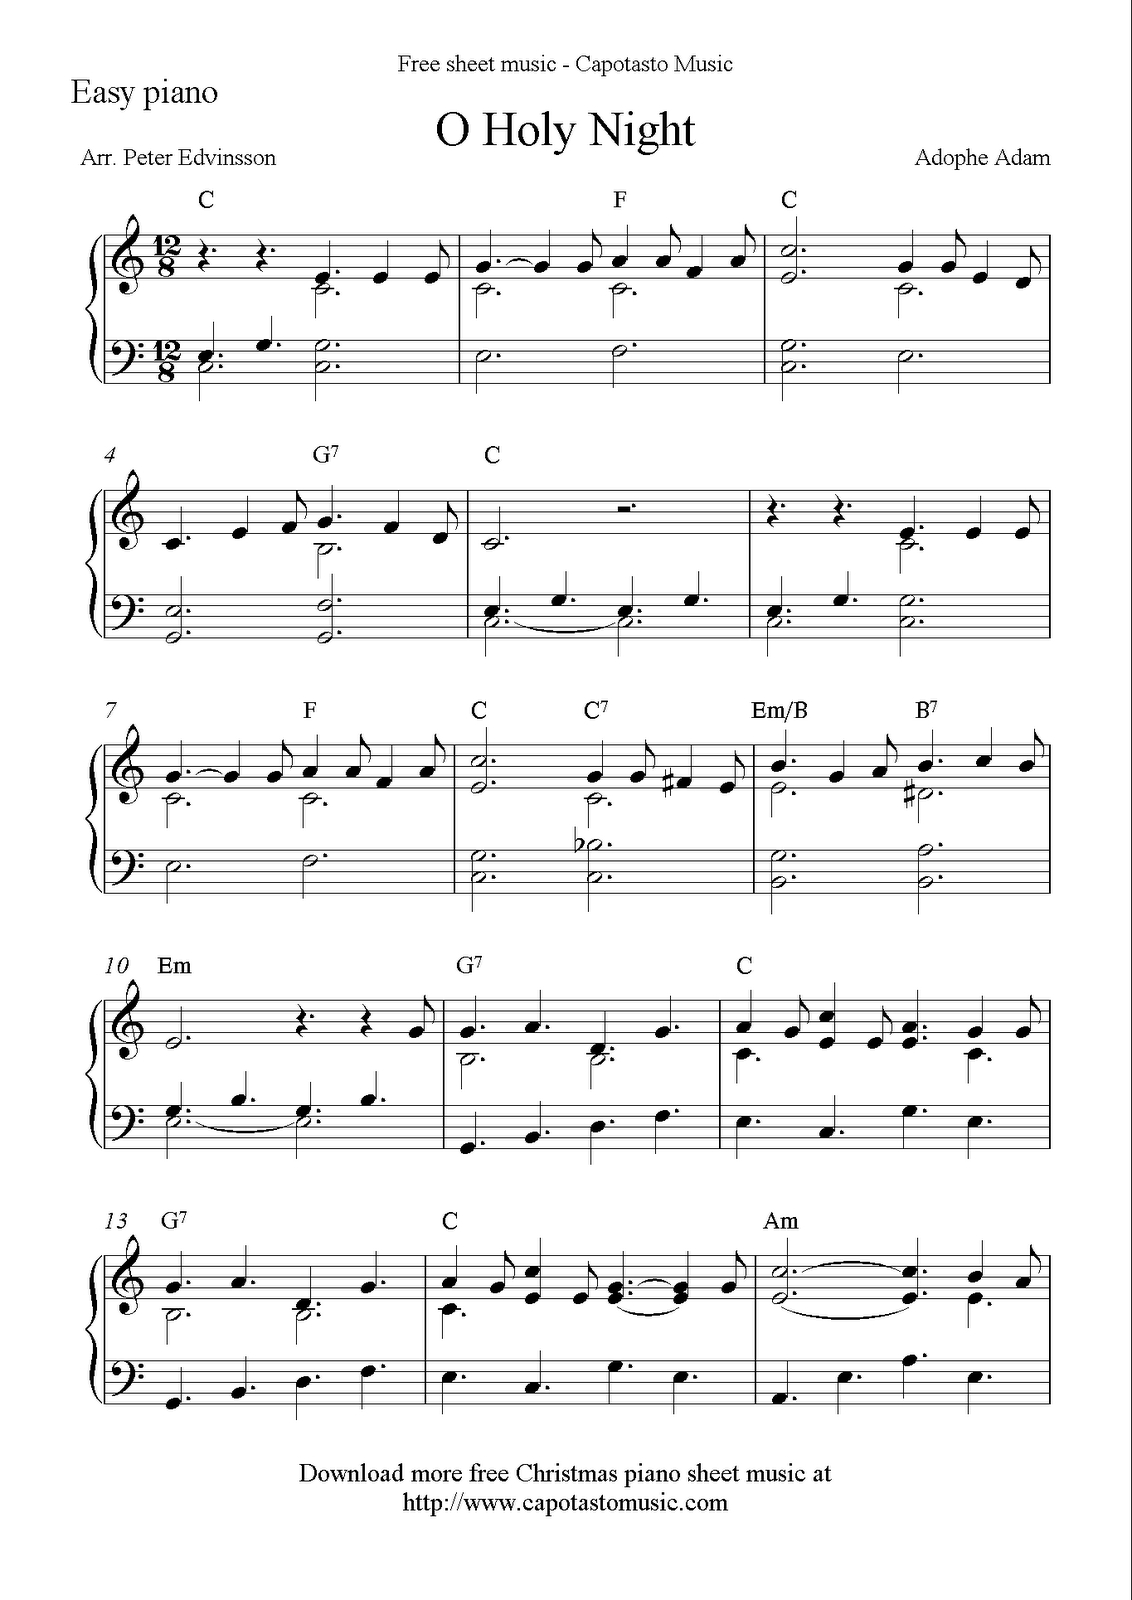 Easy Piano Solo Arrangementpeter Edvinsson Of The Christmas - Christmas Songs Piano Sheet Music Free Printable